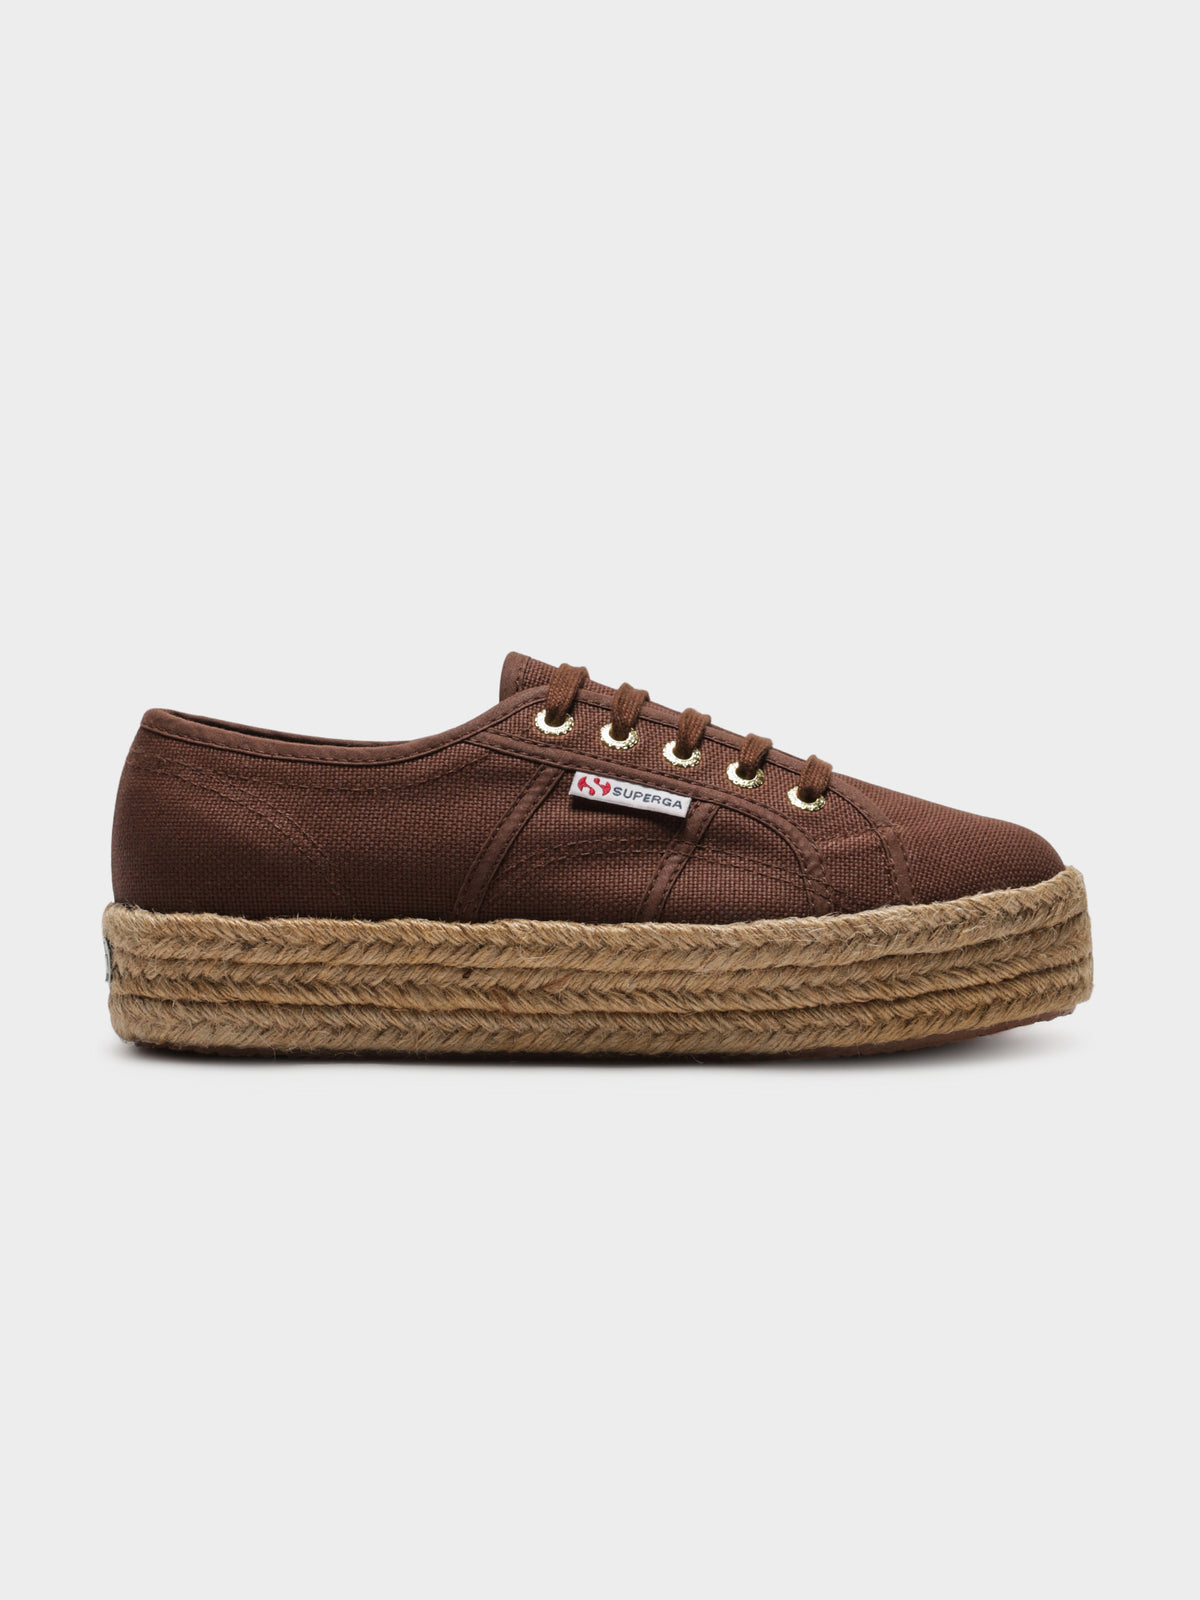 2730 Cotropew Sneakers in Brown Castagna